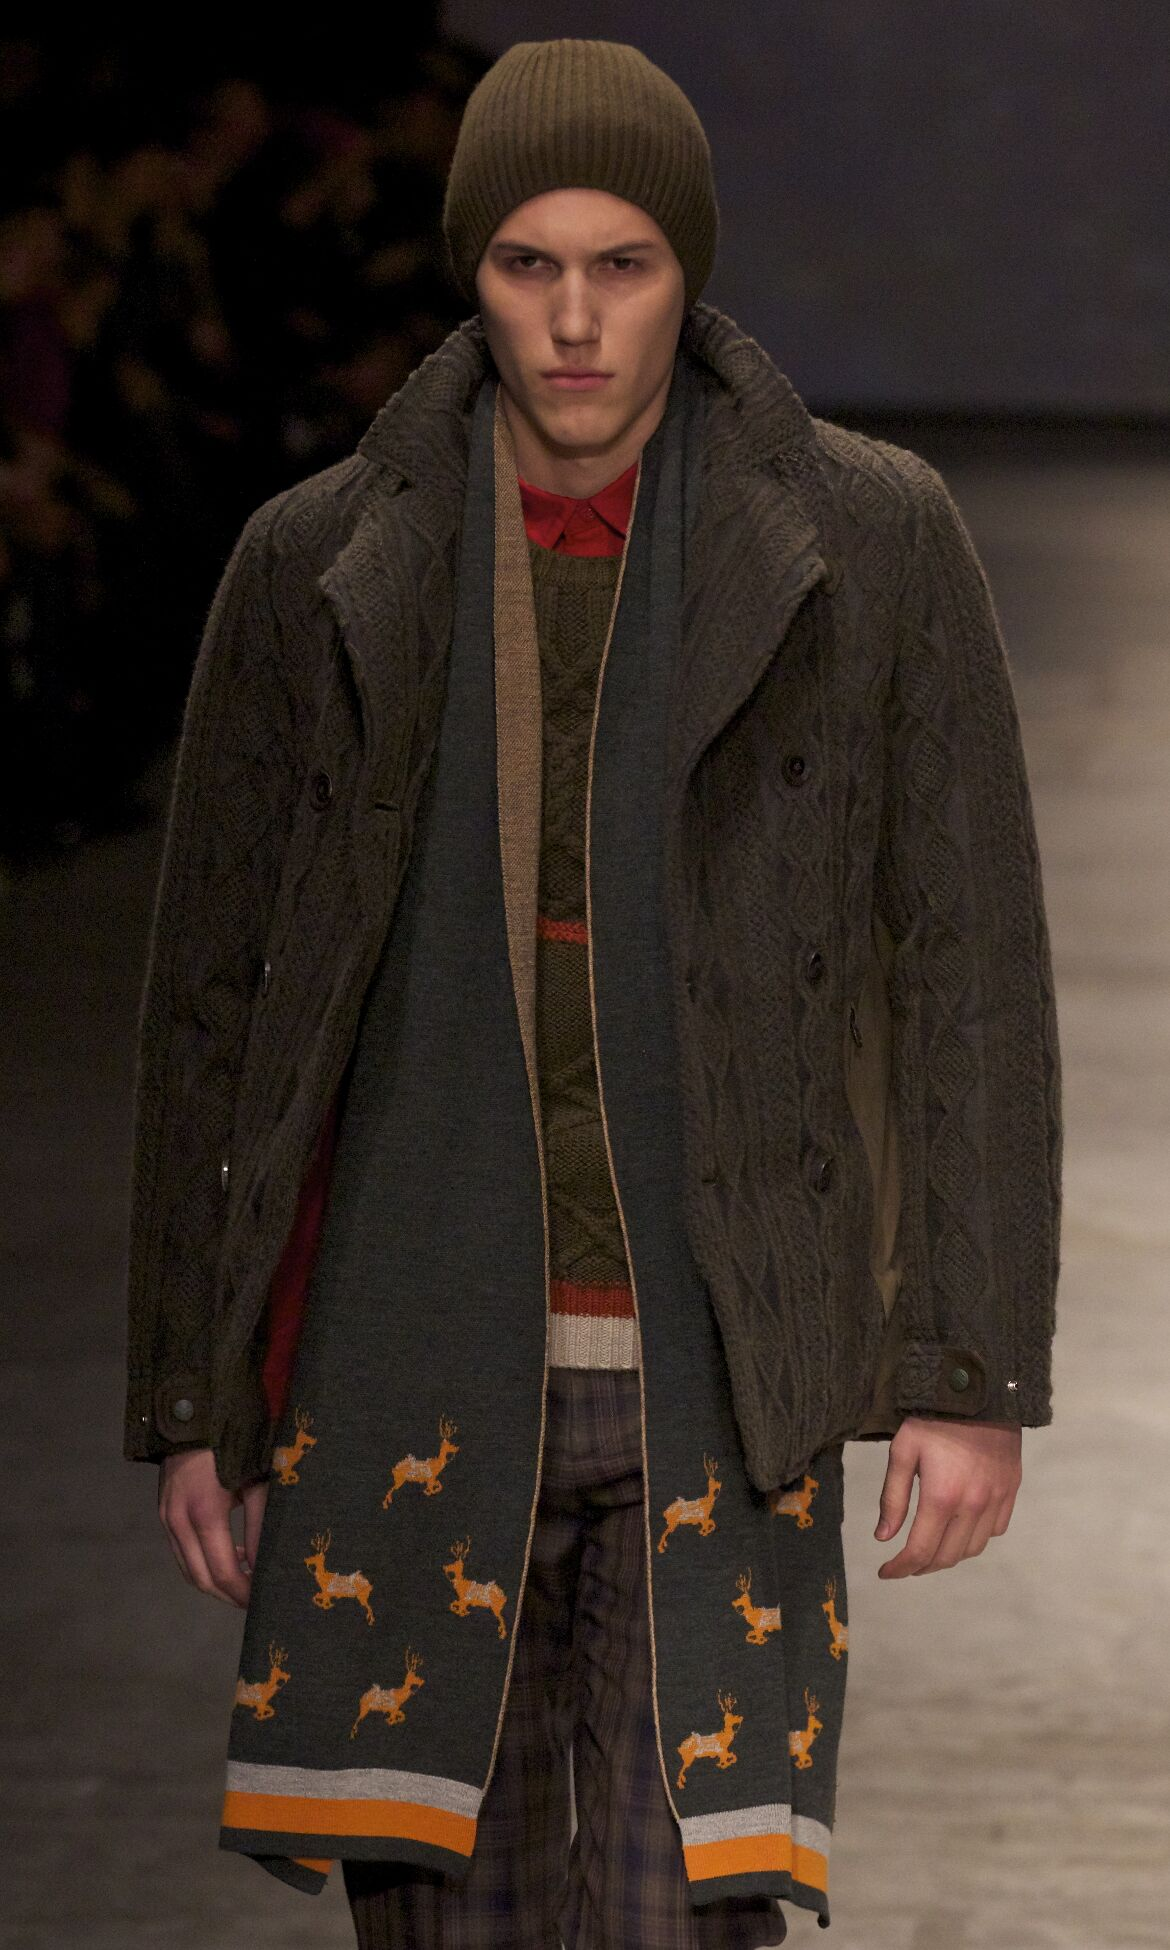 White Mountaineering FW 2013 14